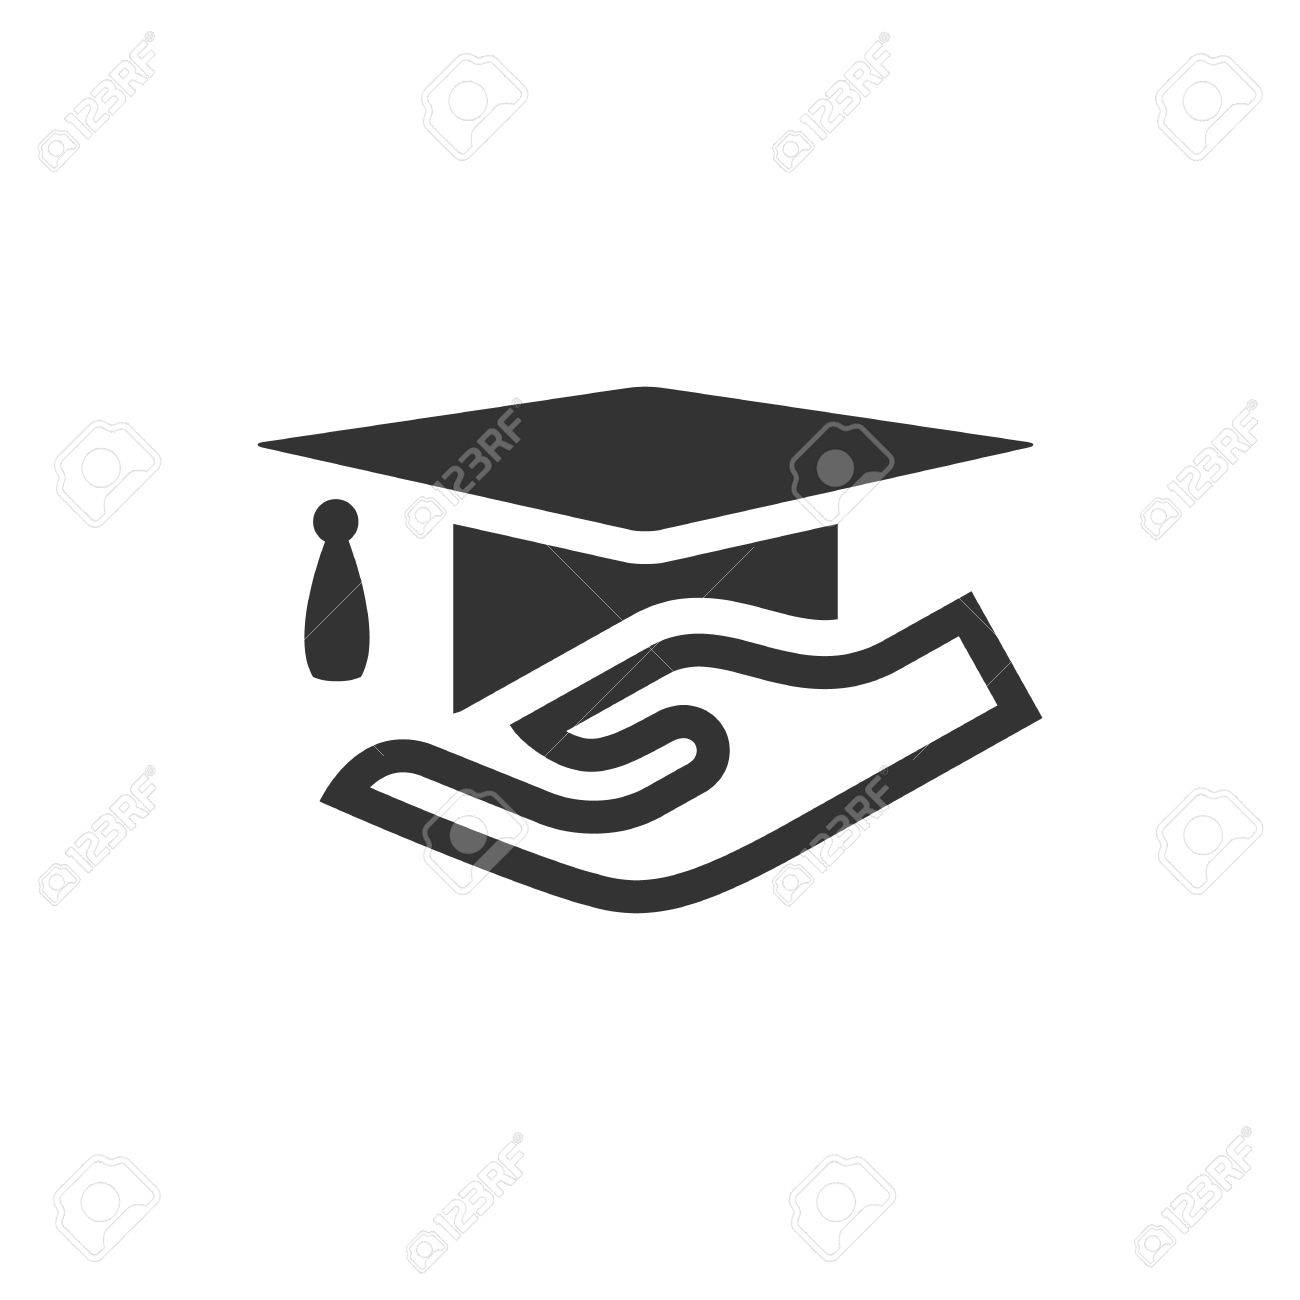 hand holding diploma icon in single color education school  hand holding diploma icon in single color education school protection security graduate diploma insurance stock